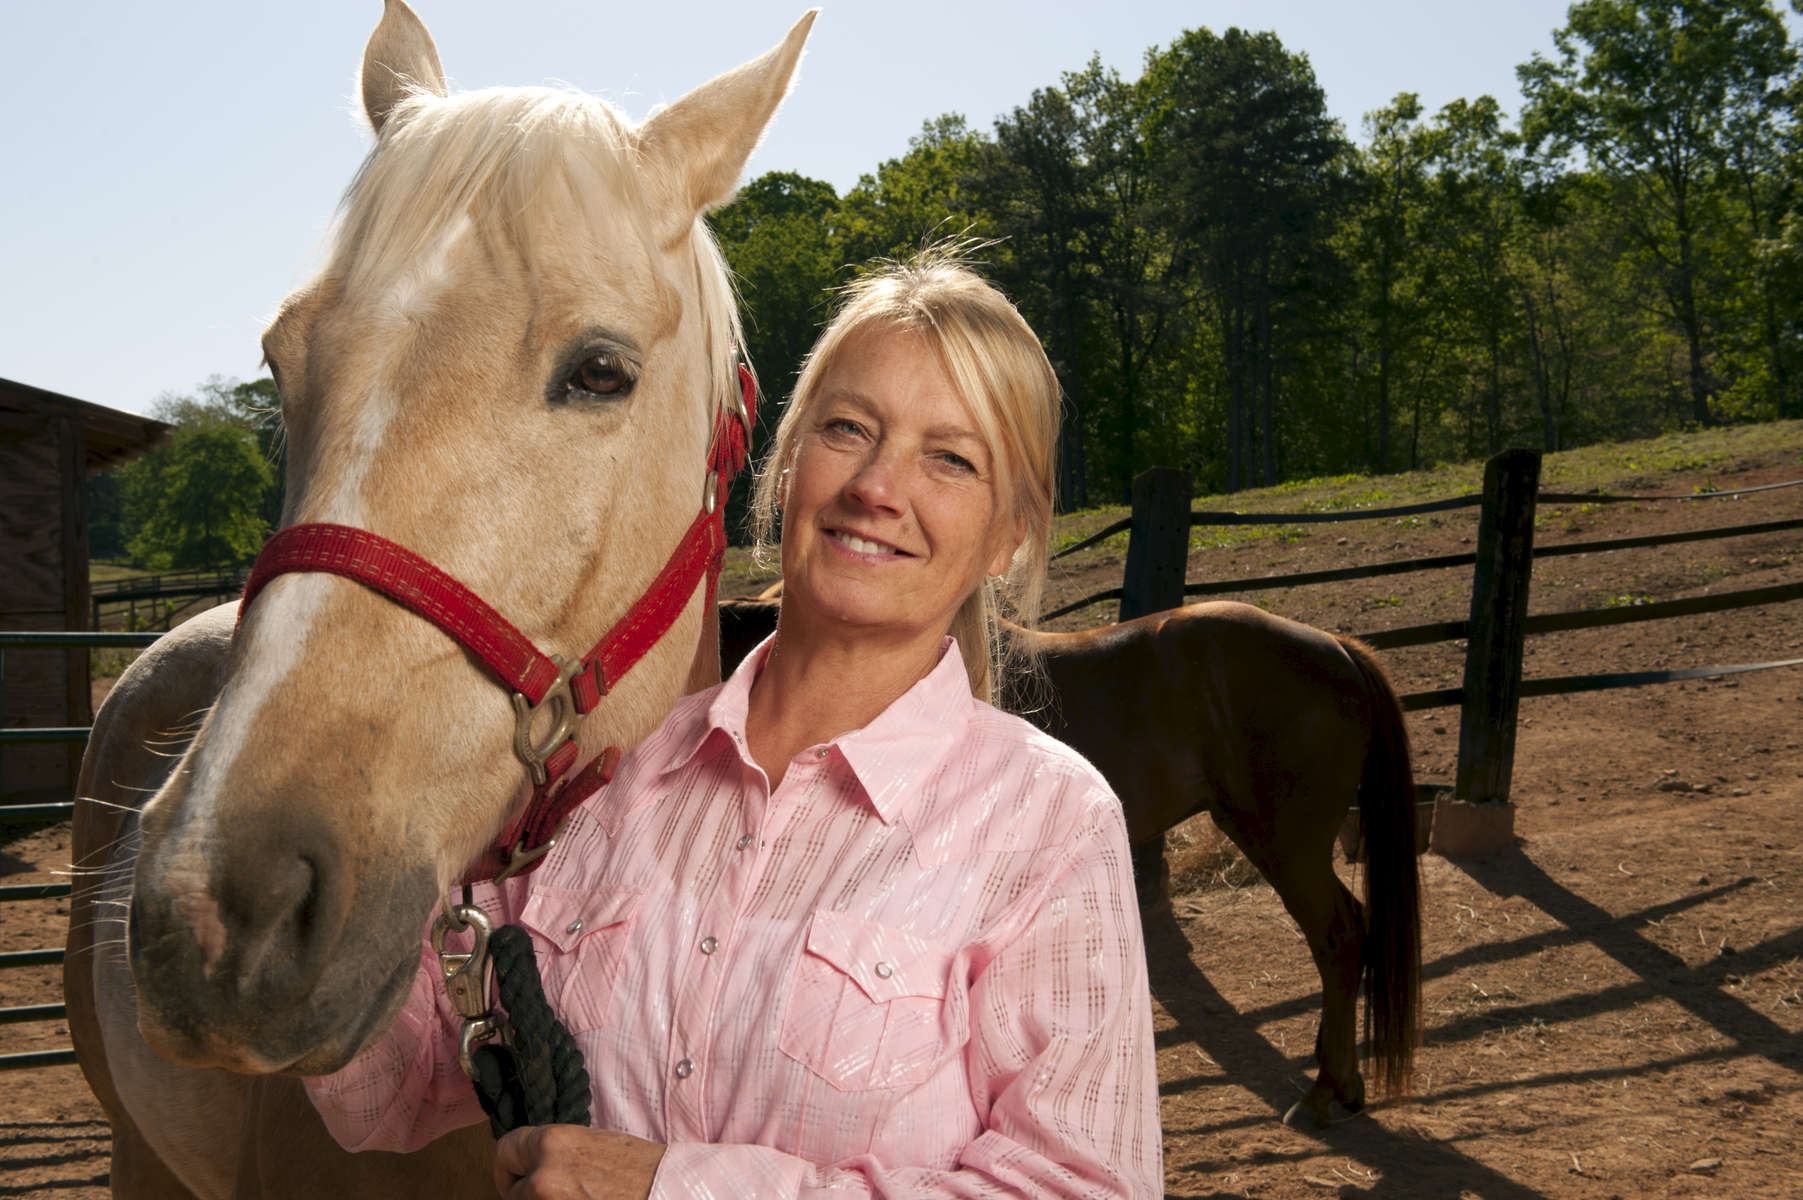 Cheryl Flanagan operates Save the Horses, a non-profit organization committed to the rescue and rehabilitation of equines suffering from abuse, as well as the successful retirement of working equines.